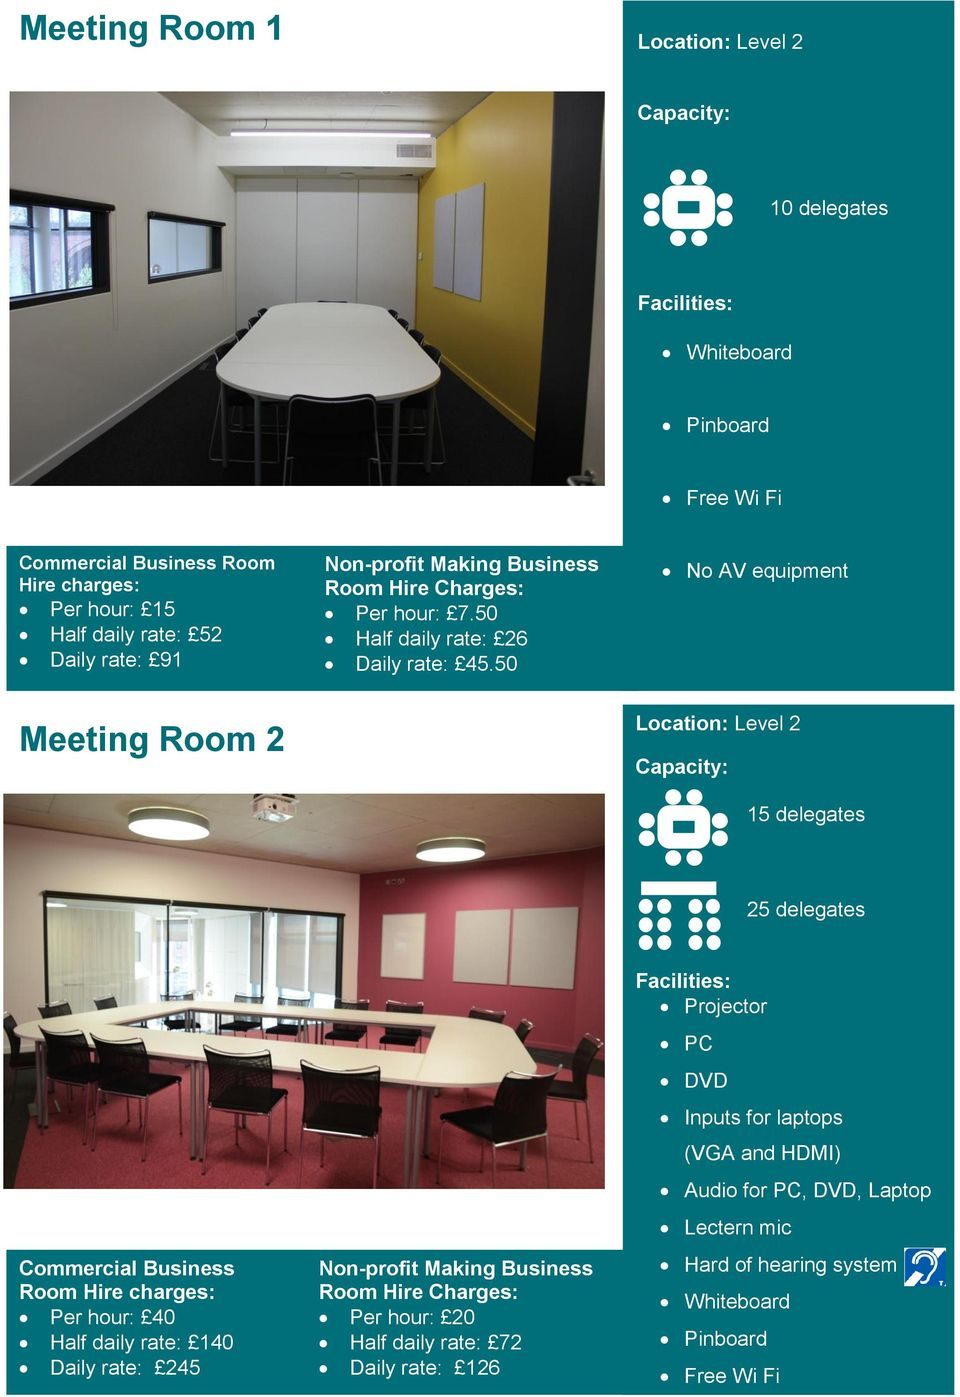 50 No AV equipment Meeting Room 2 15 delegates 25 delegates Per hour: 40 Half daily rate: 140 Daily